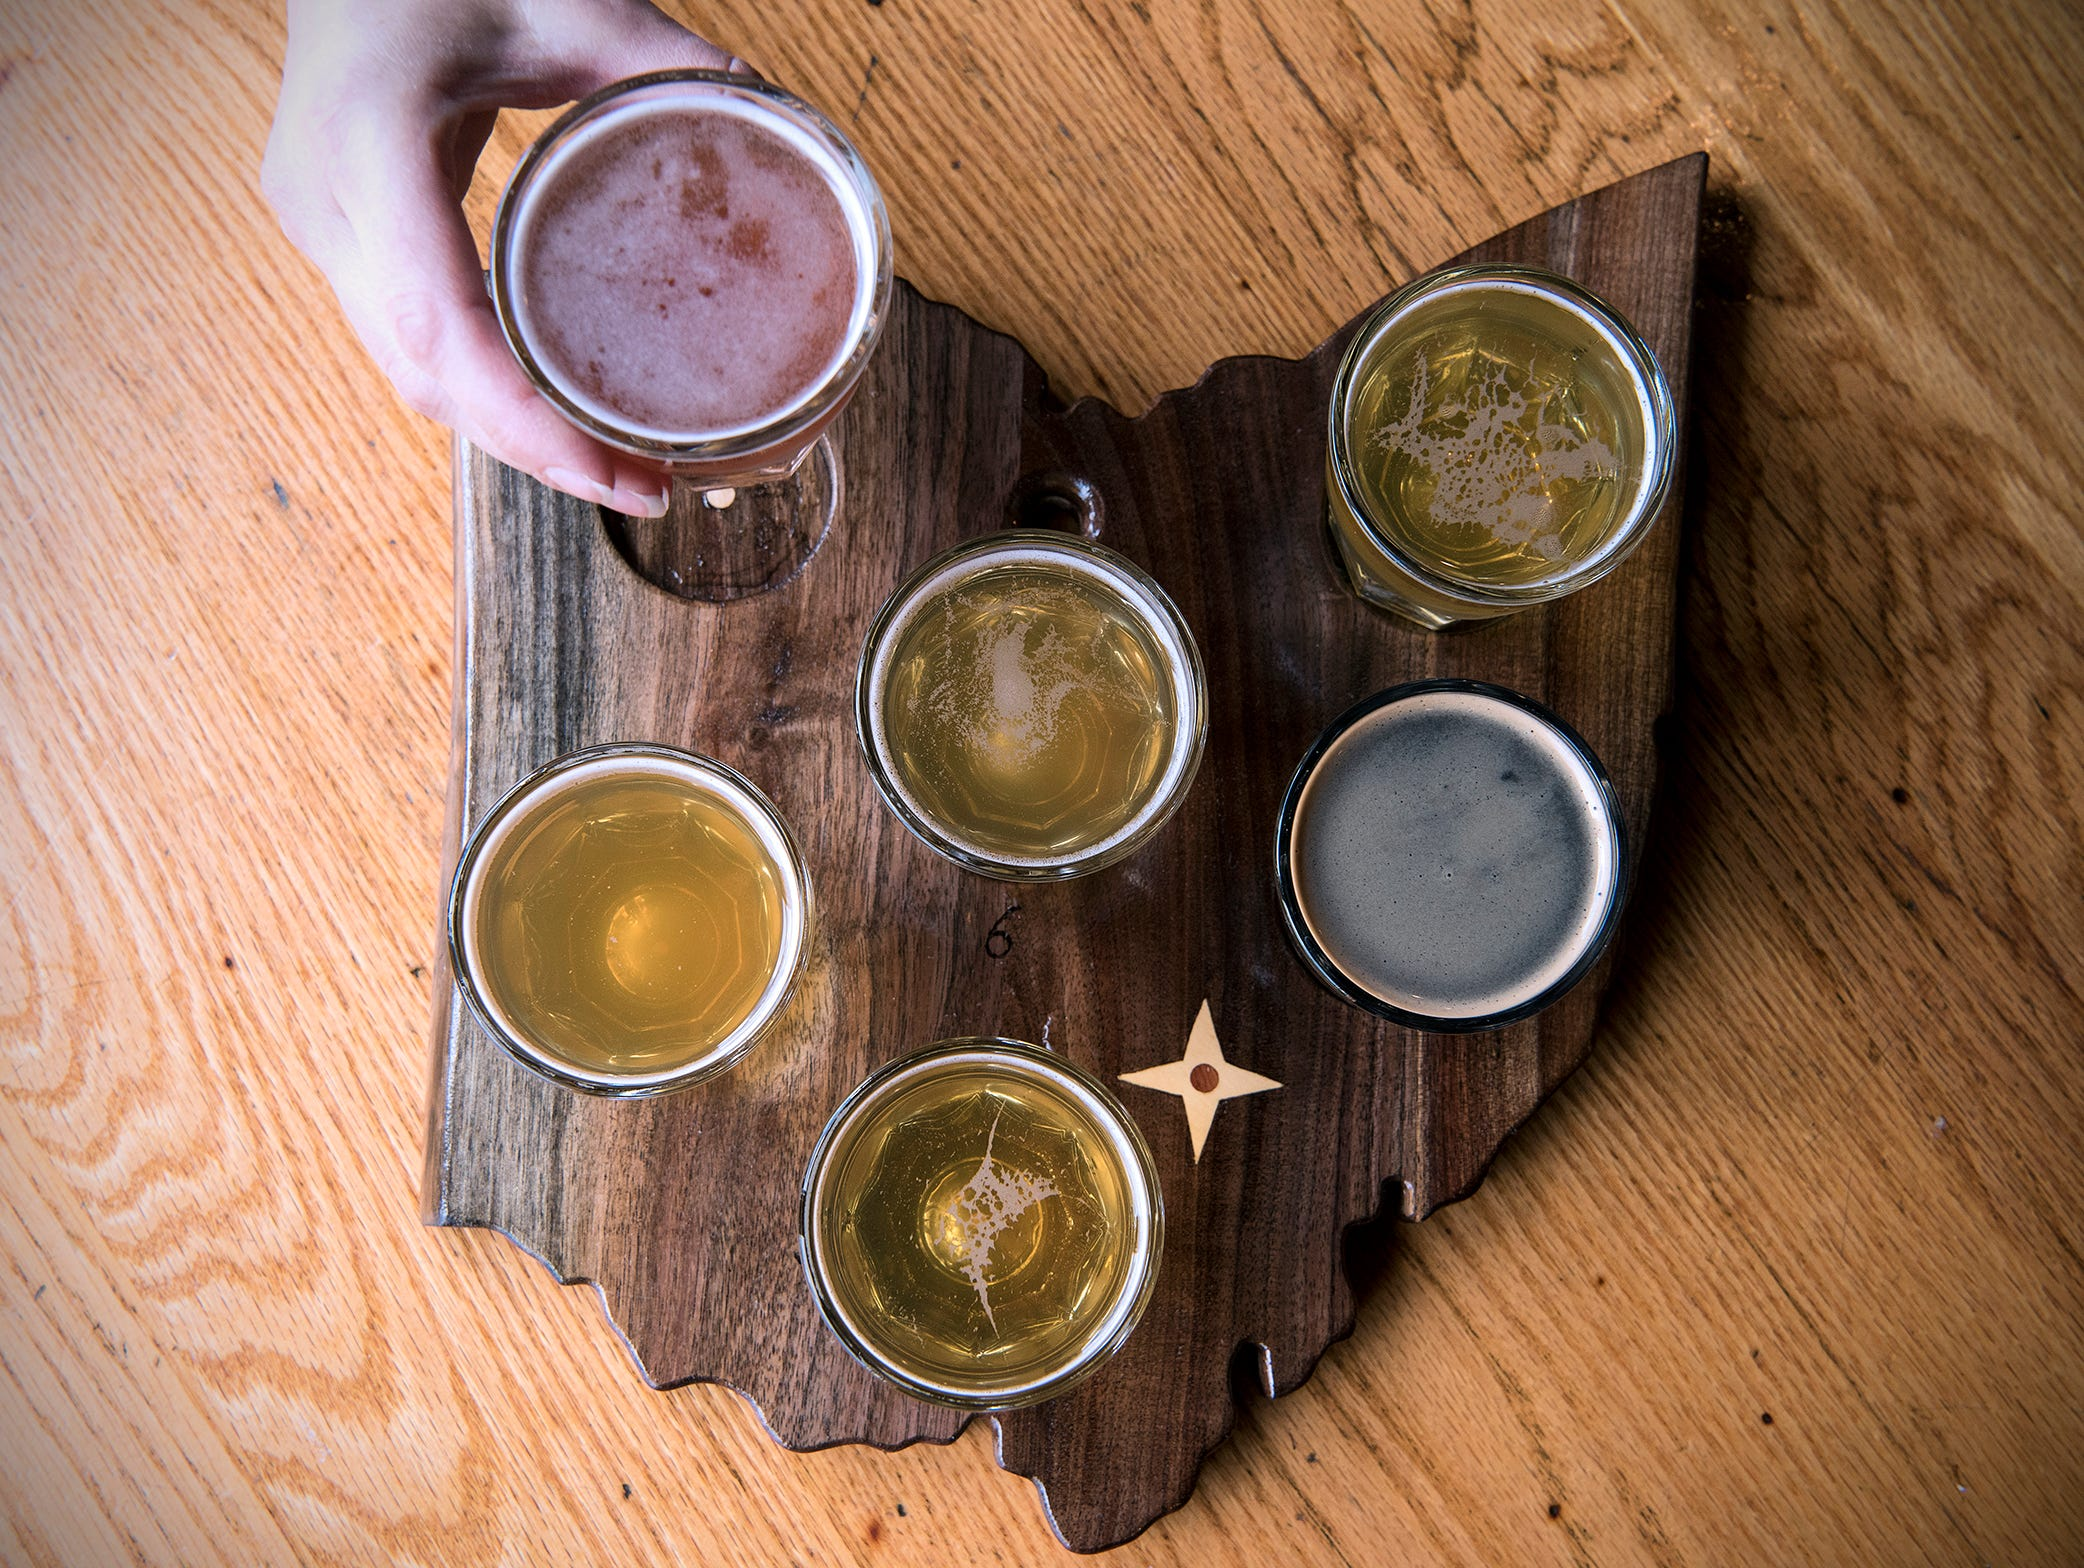 Ohiou0027s Jackie Ou0027s Brewery Has Its Own Farm And Uses Local Ingredients Like  Wildflower Honey And